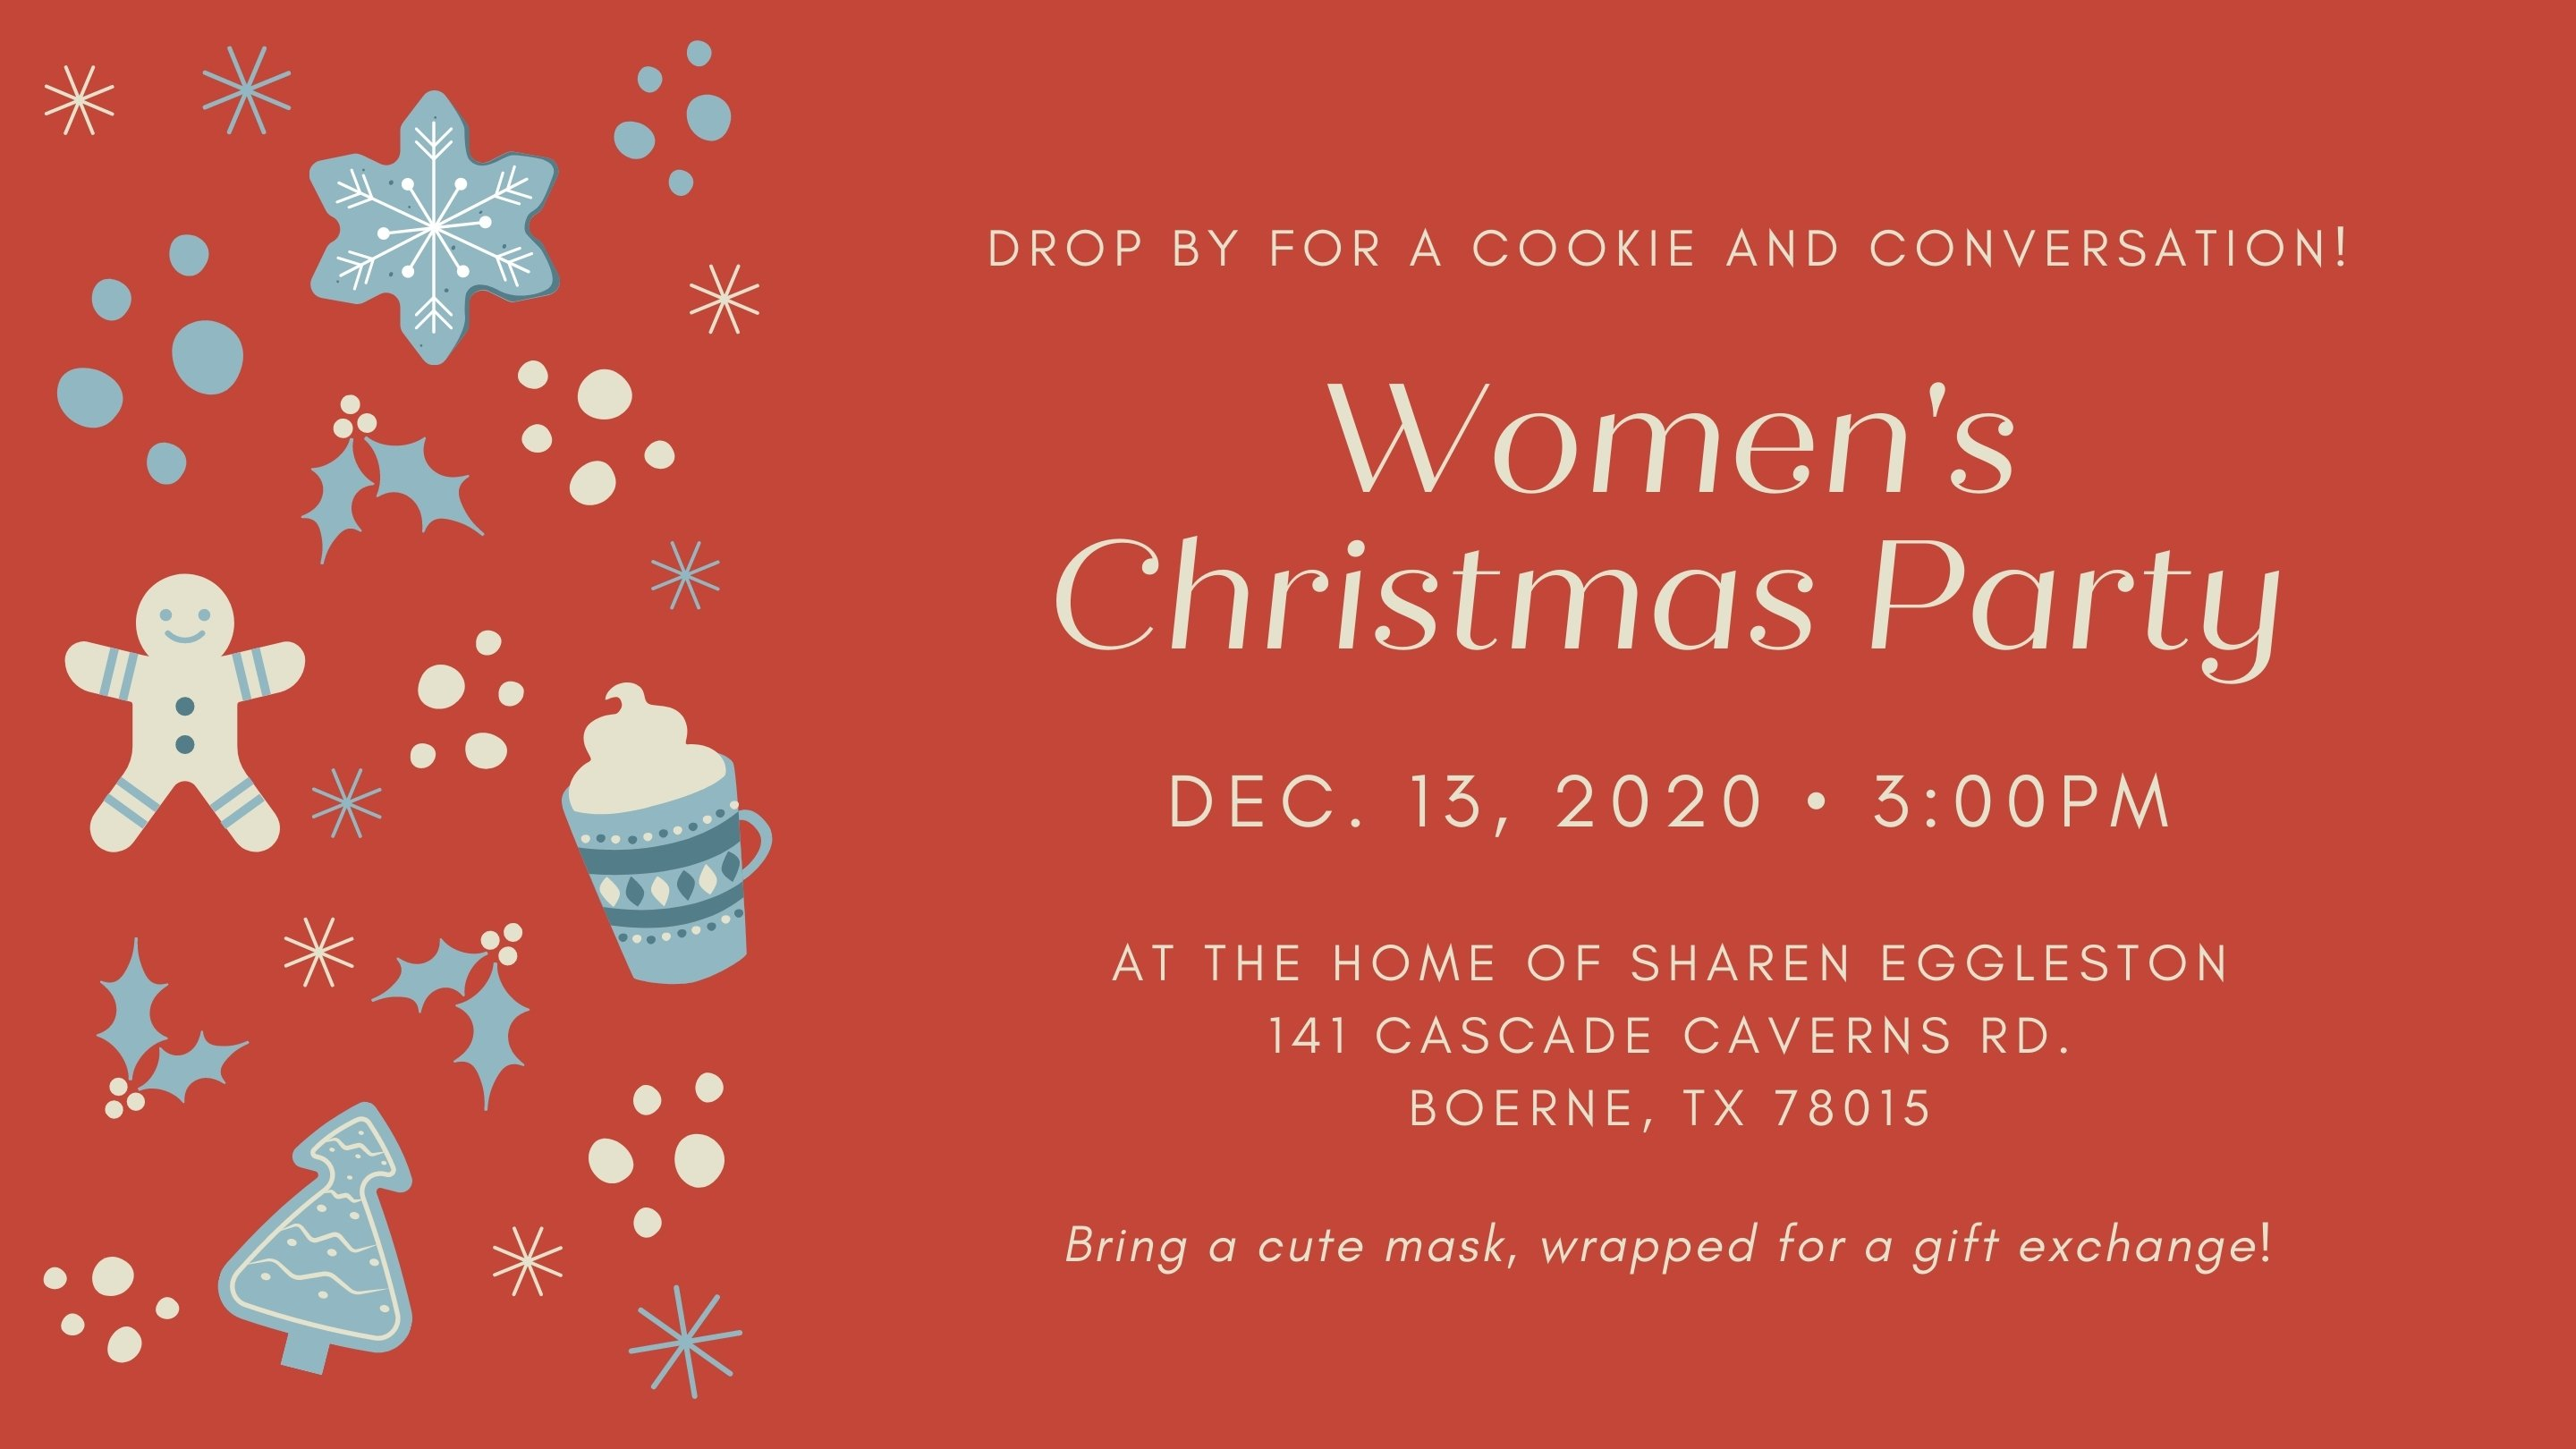 Women's Christmas Party 2020